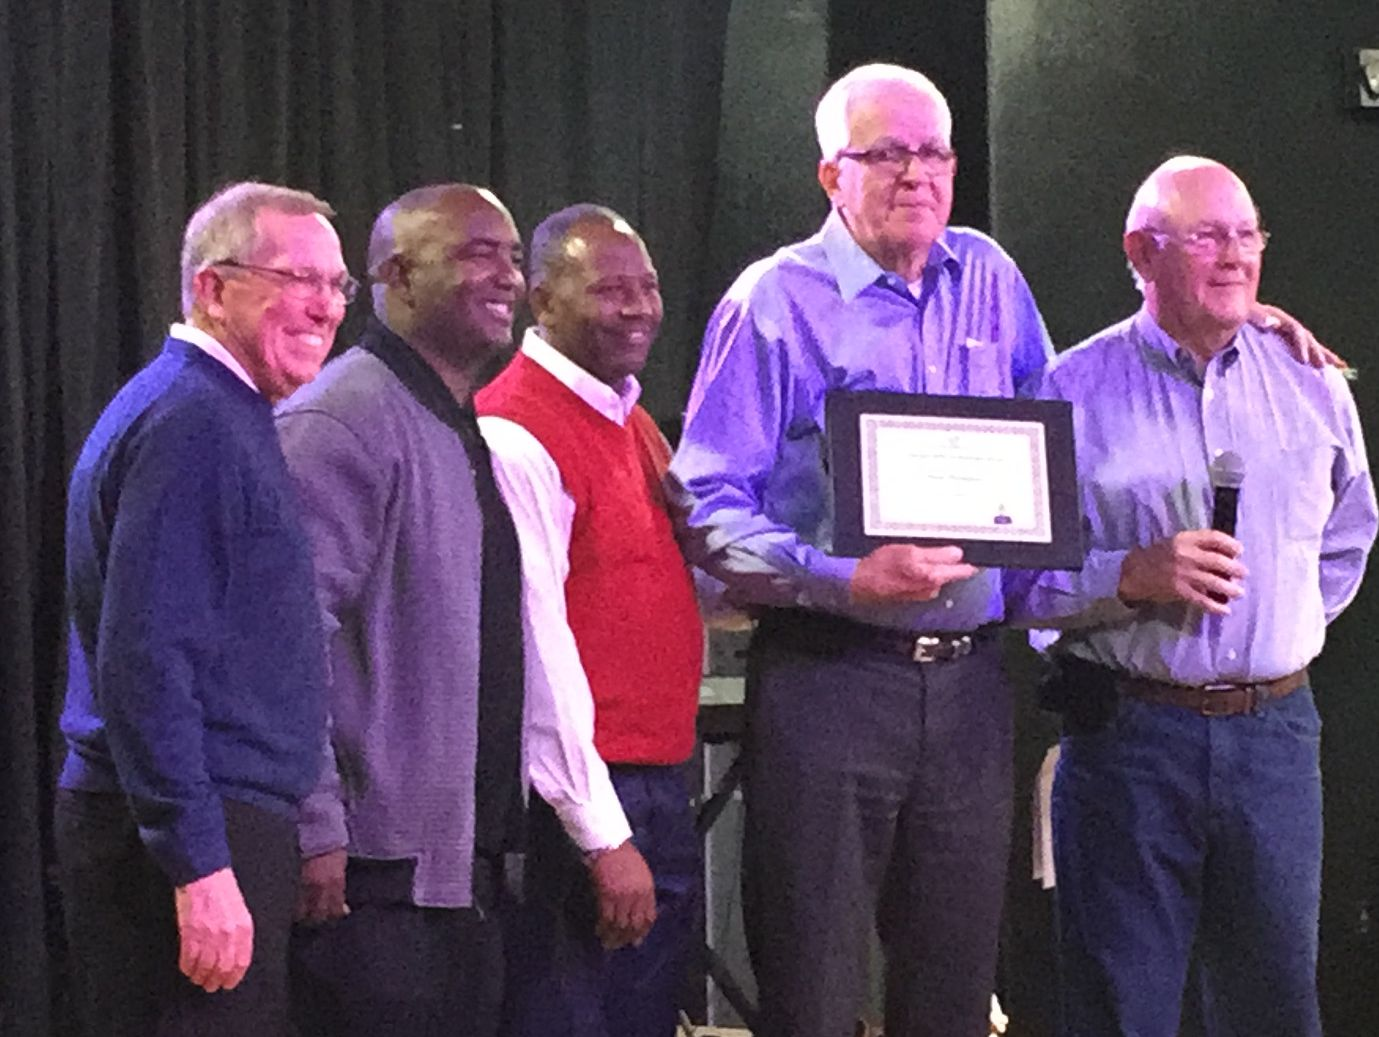 A roast of long-time Indio High School teacher, coach and administrator Paul Thompson Wednesday saw Thompson receiving a certificate from the Boys and Girls Club of the Coachella Valley. Those on stage were (from left) Jim Ducatte of the Boys and Girls Club, fromer Indio High School student and Major League Baseball official Tony Reagins, Quinta Egson of the Boys and Girls Club, Thompson and event organizer Dave Ison.